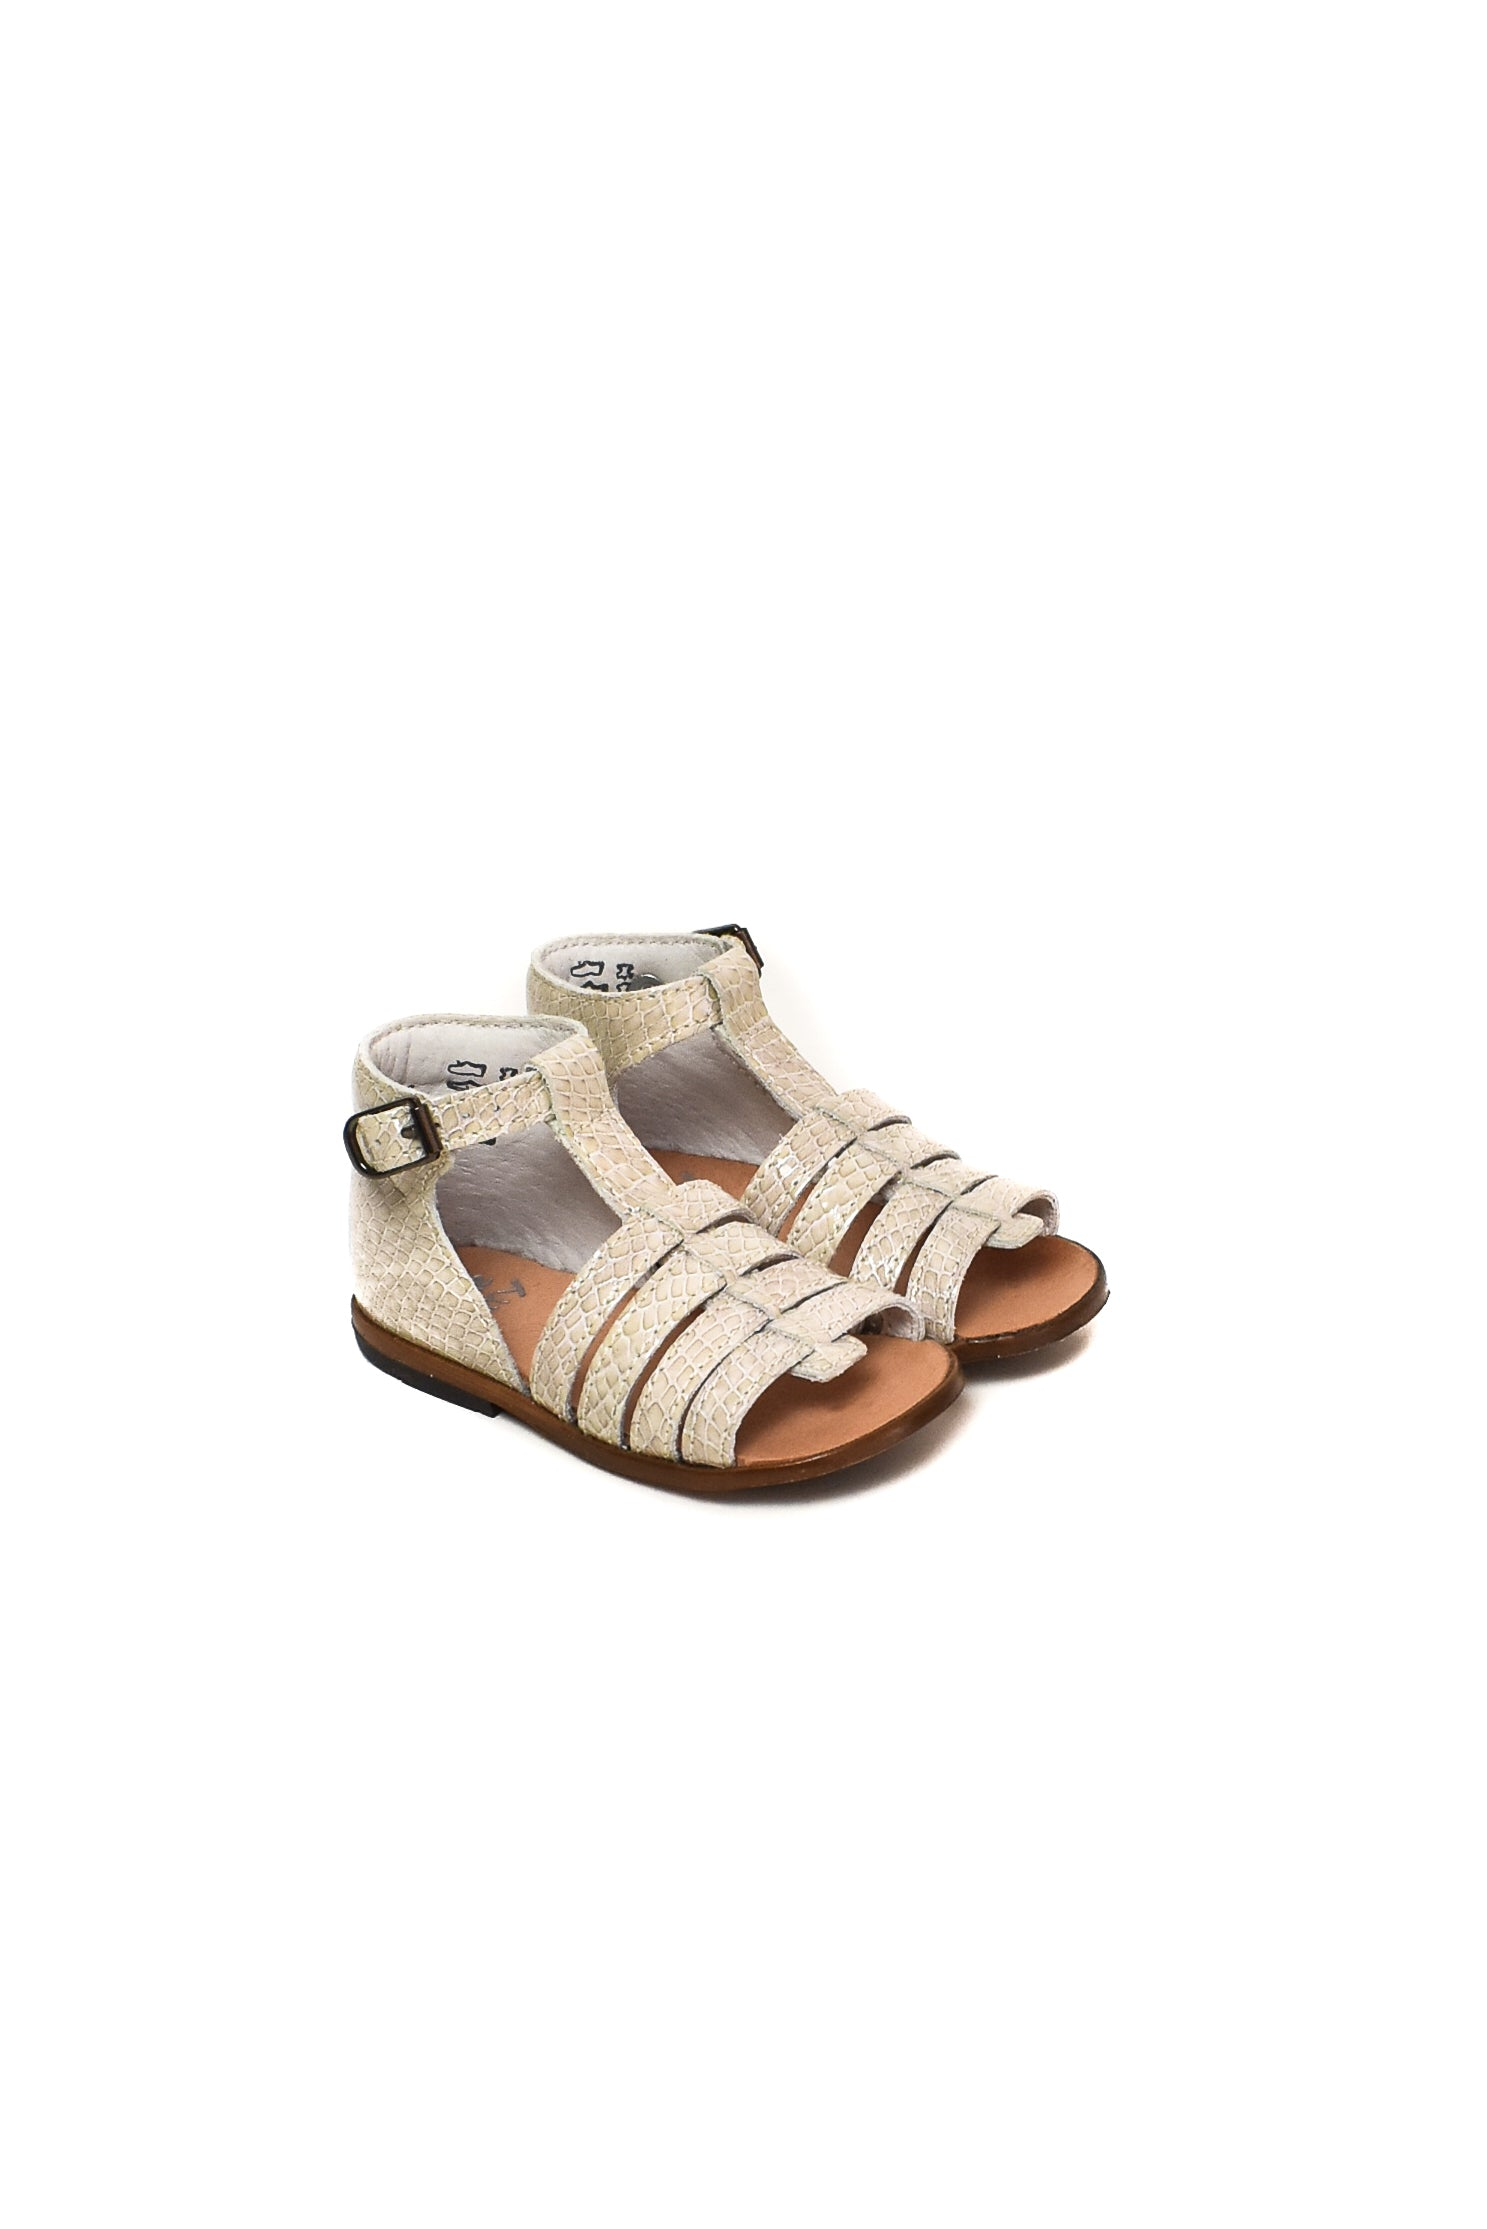 10007868 Little Mary Kids~Sandals 12M-3T (EU 20-25) at Retykle